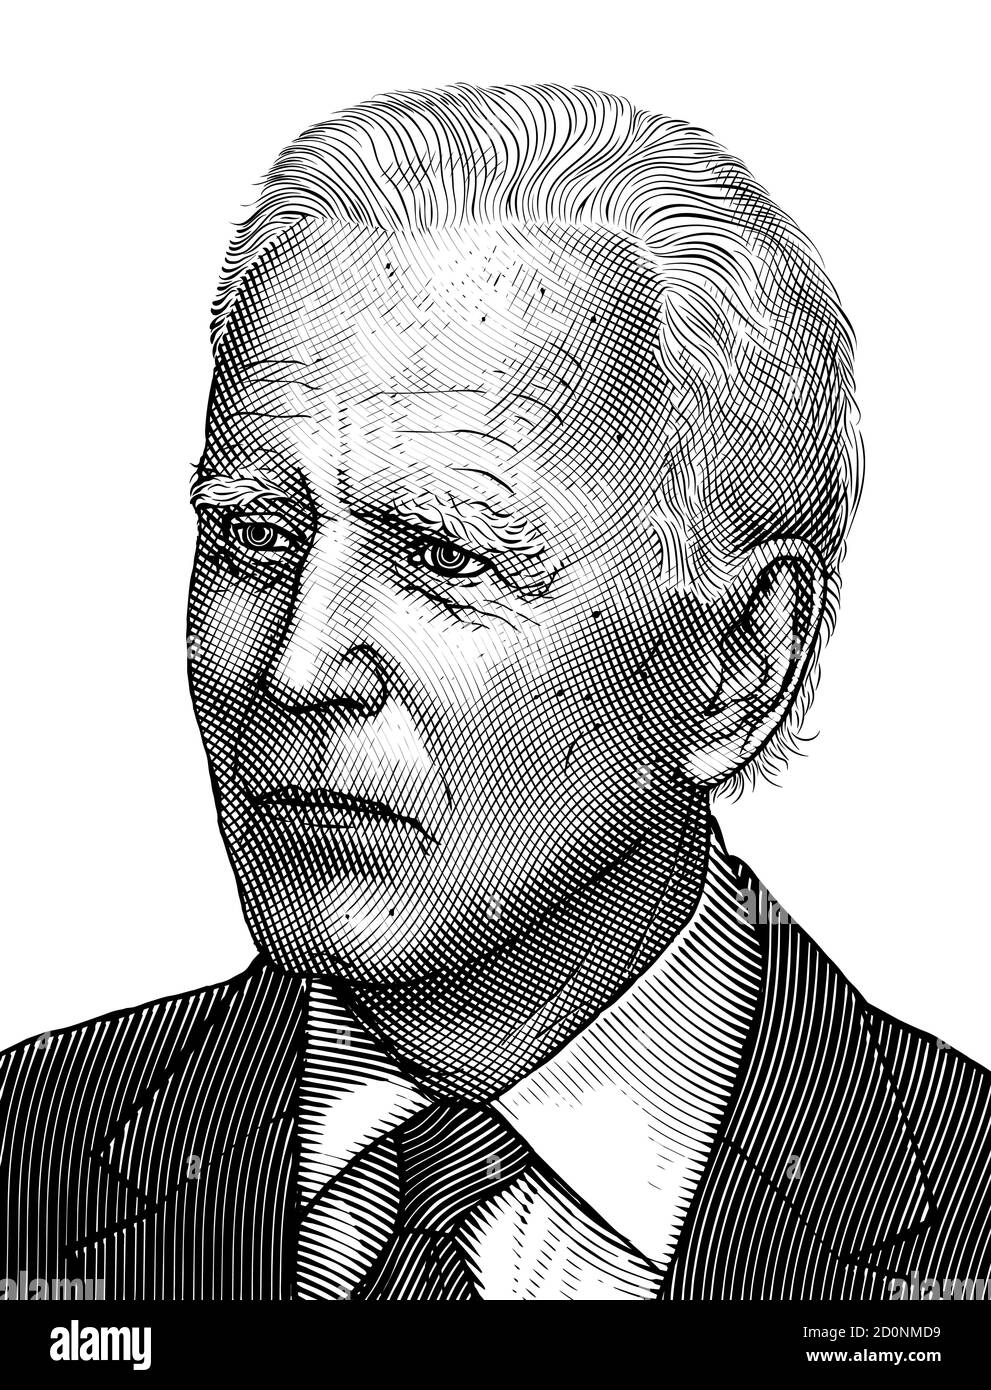 Donald Trump Illustration Black and White Stock Photos & Images - Alamy